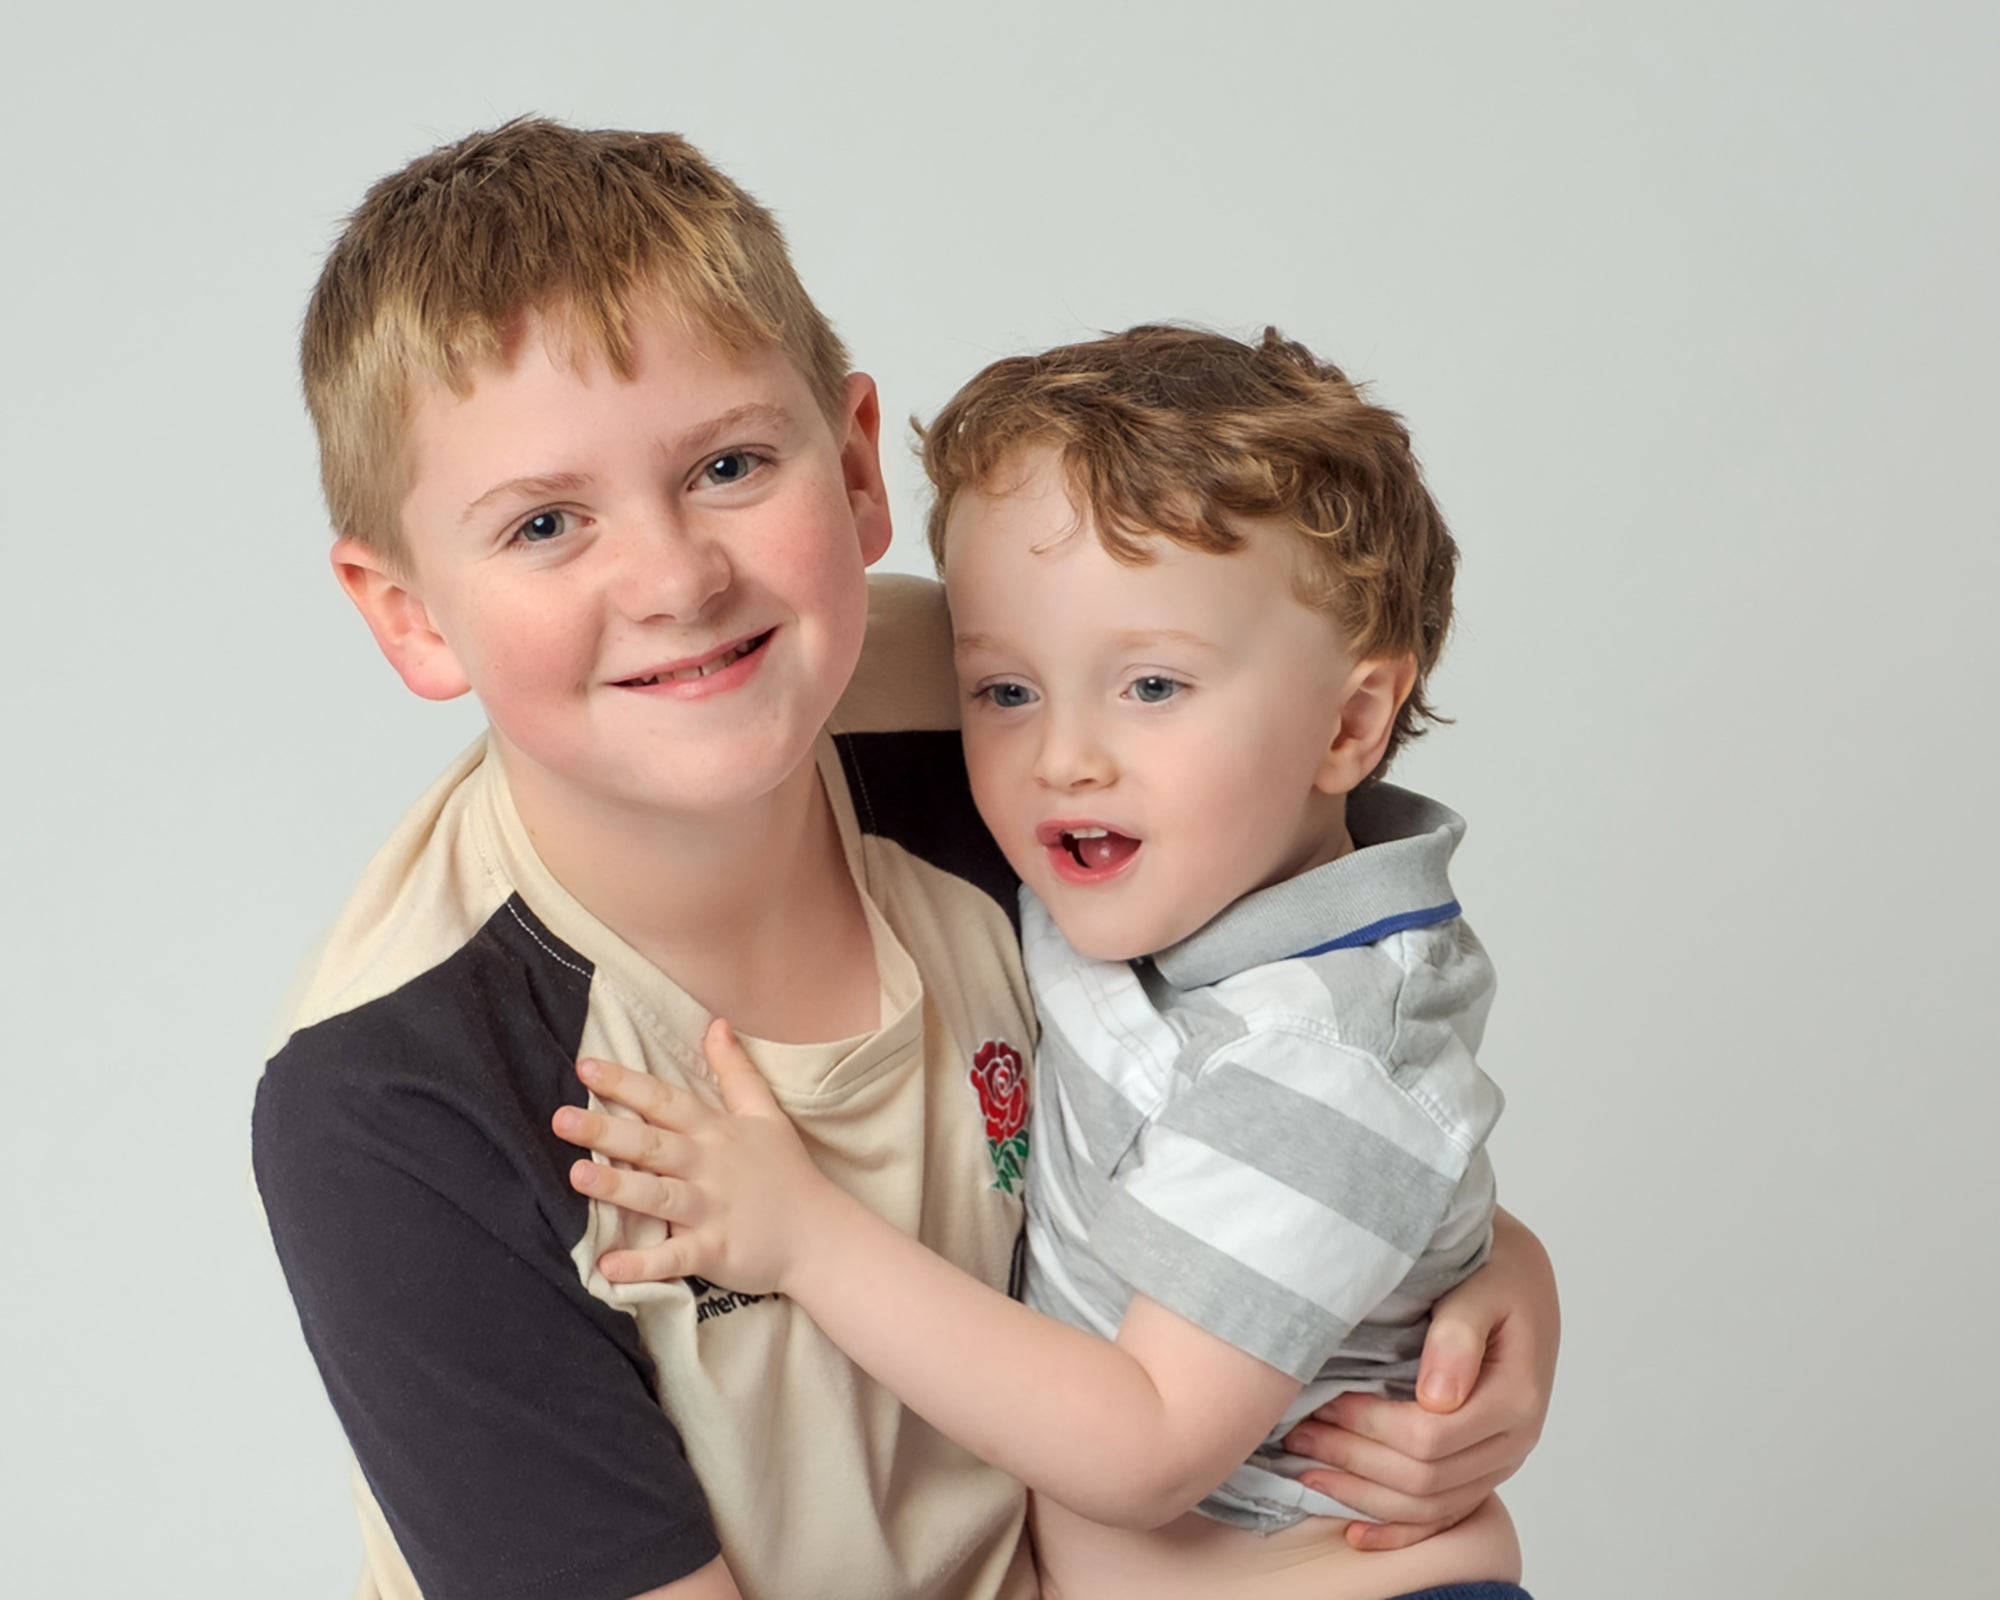 Young_boy_being_cuddled_by_older_brother_on_white_background_smiling.jpg